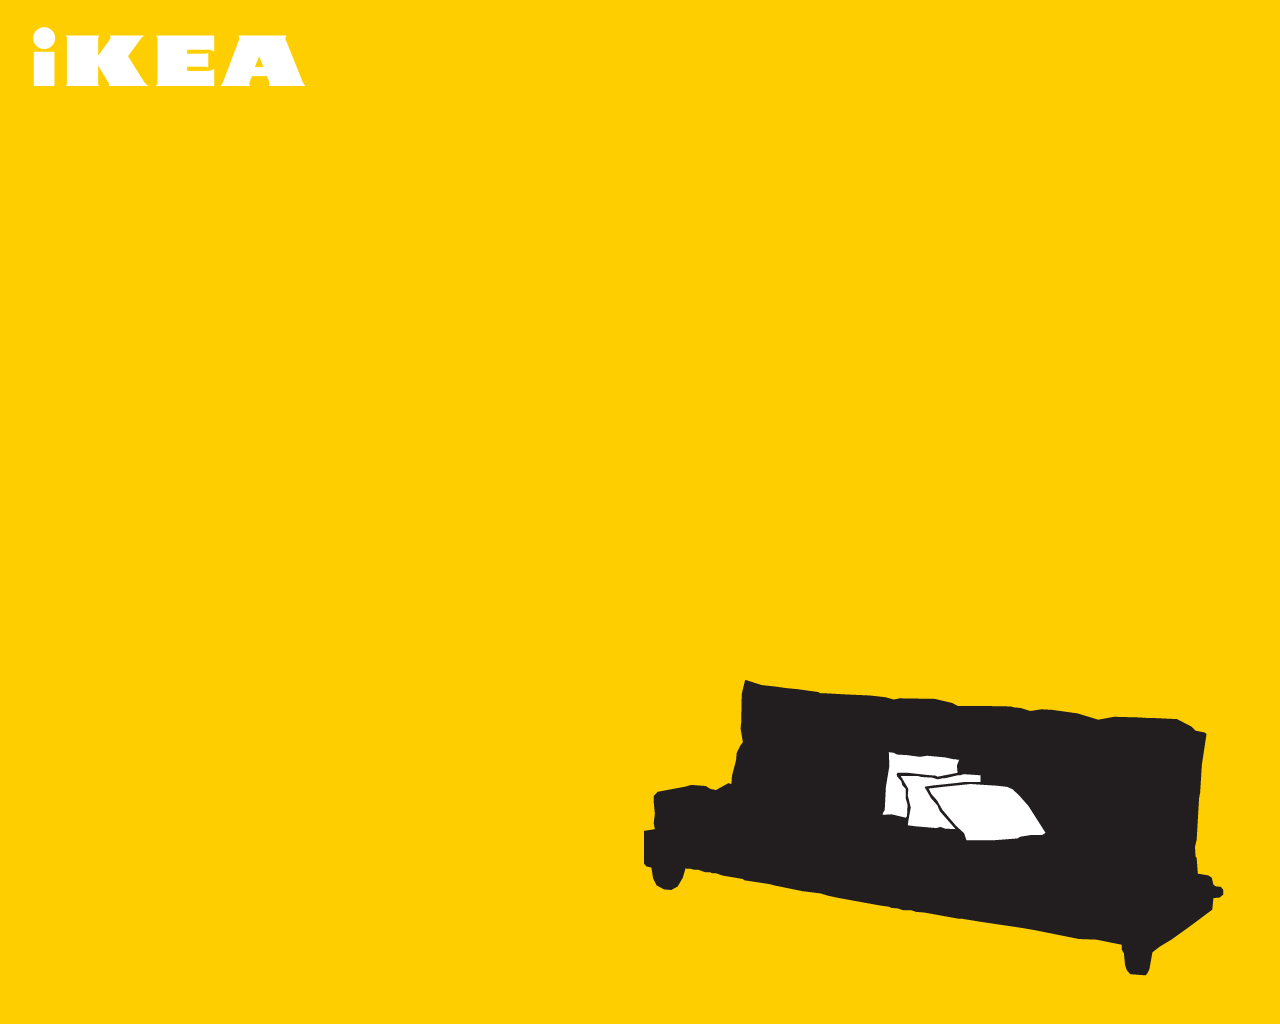 Ikea Poster Artd 362 Letterform Waming Final Project Ikea Poster Book Cover